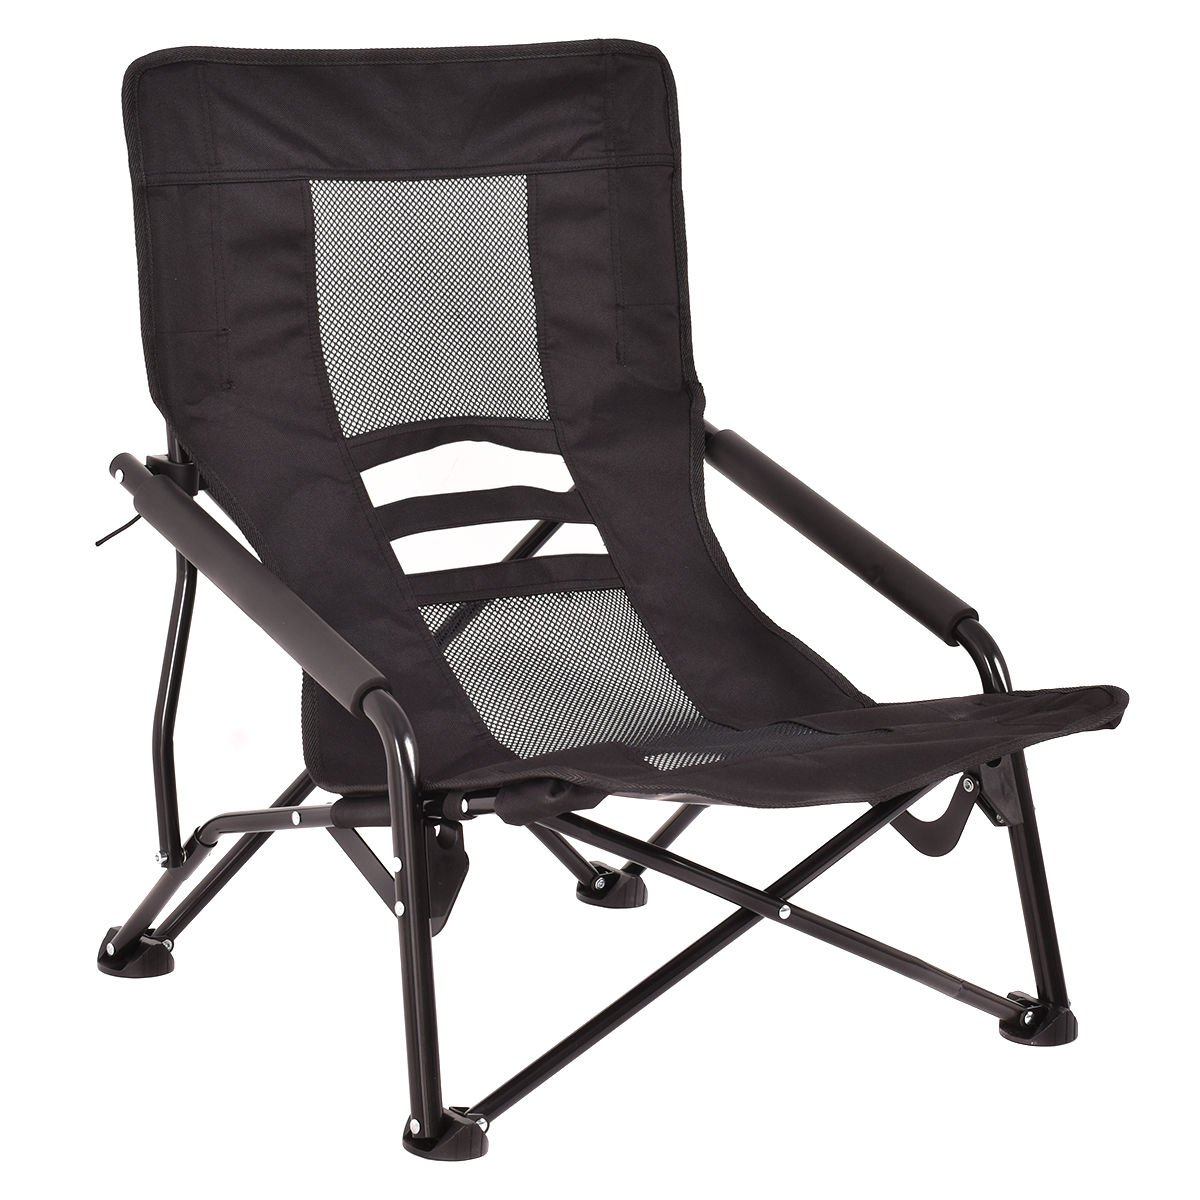 Giantex Outdoor High Back Folding Beach Chair Lightweight Camping Furniture Portable Mesh Seat (Black)